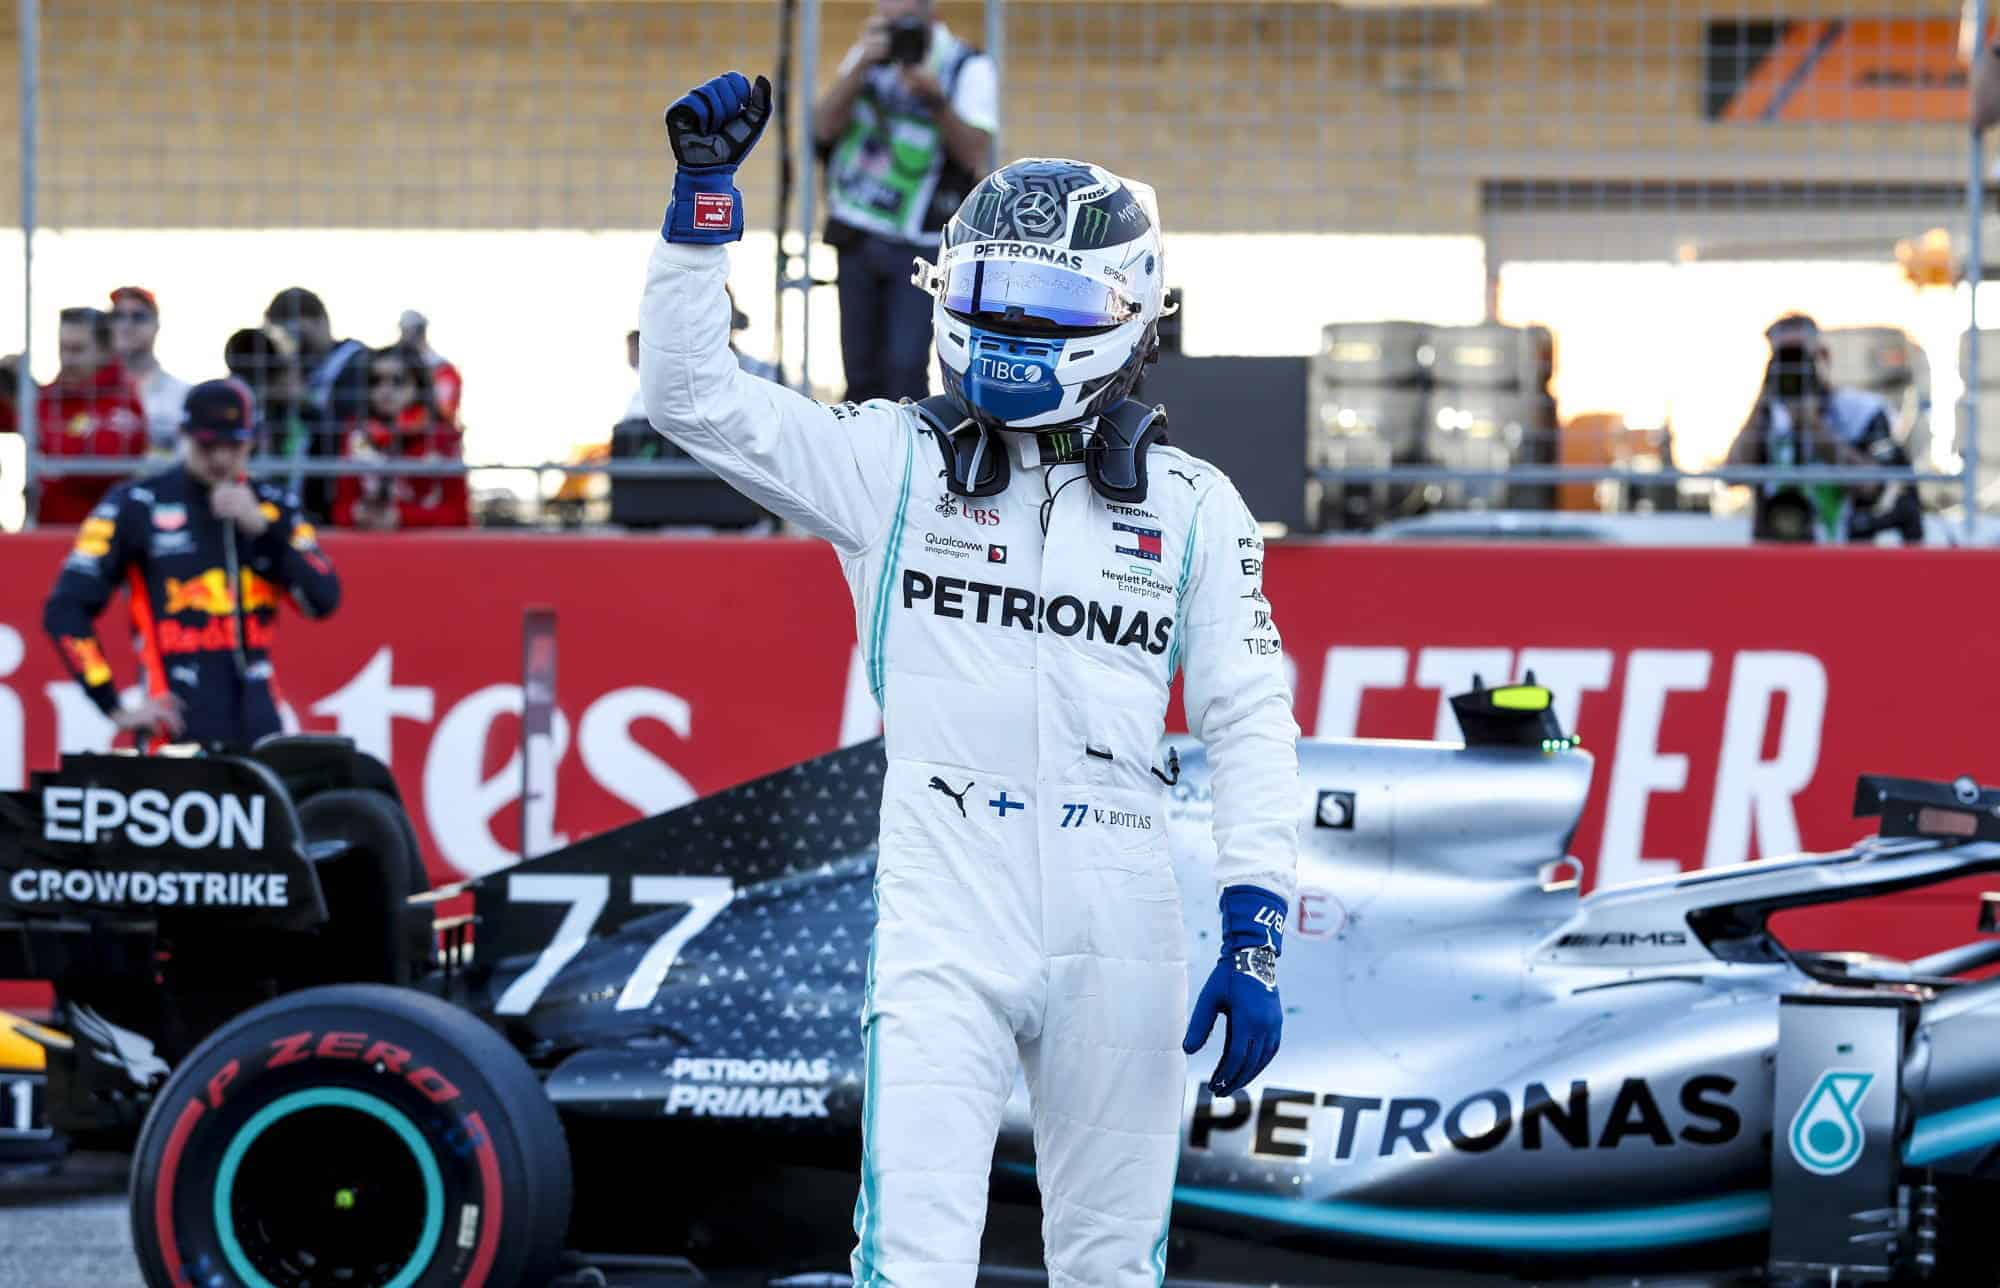 Bottas Mercedes USA GP Austin F1 after Qualifying on track with helmet with F1 W10 car 2019 Photo Daimler